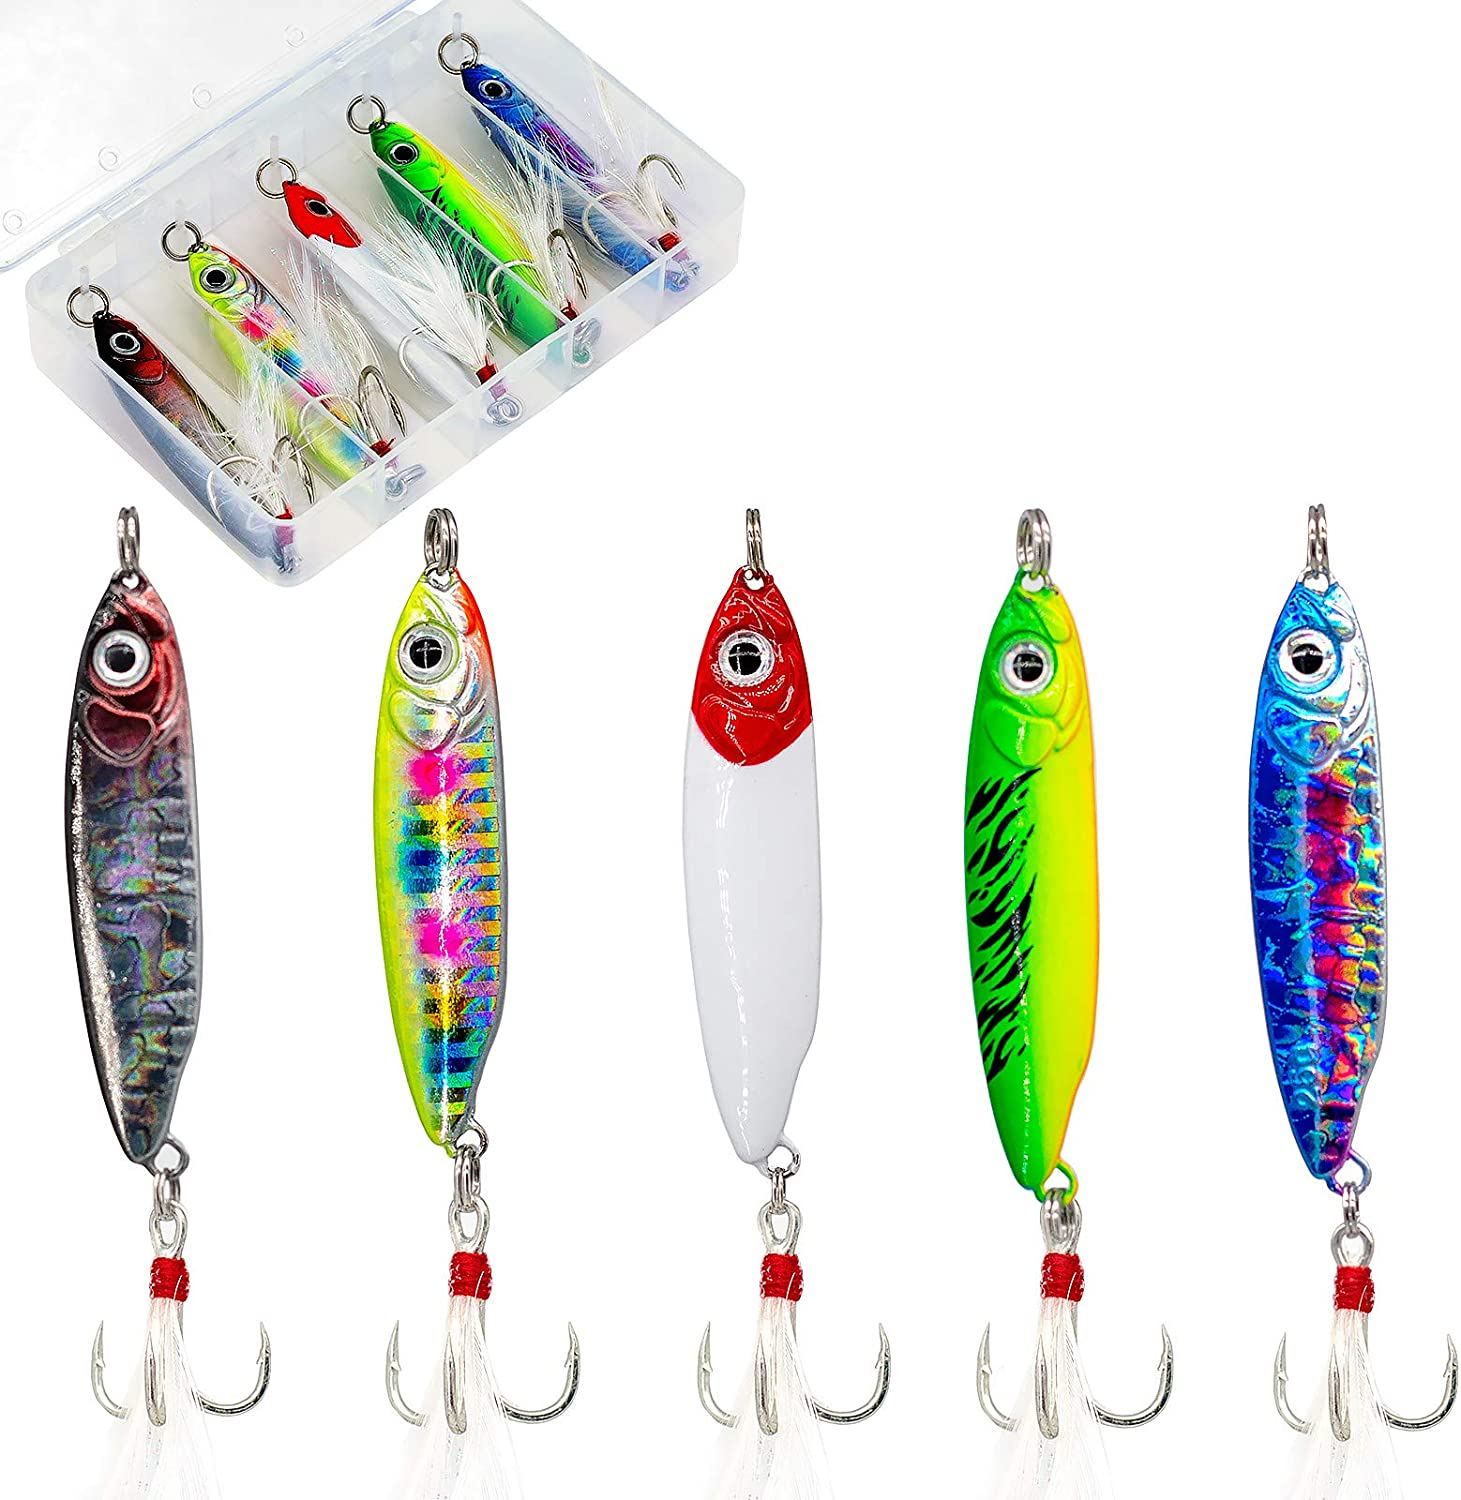 Max 66% OFF 5PCS Jigs Fishing Lures Dallas Mall Saltwater Lure Surf for